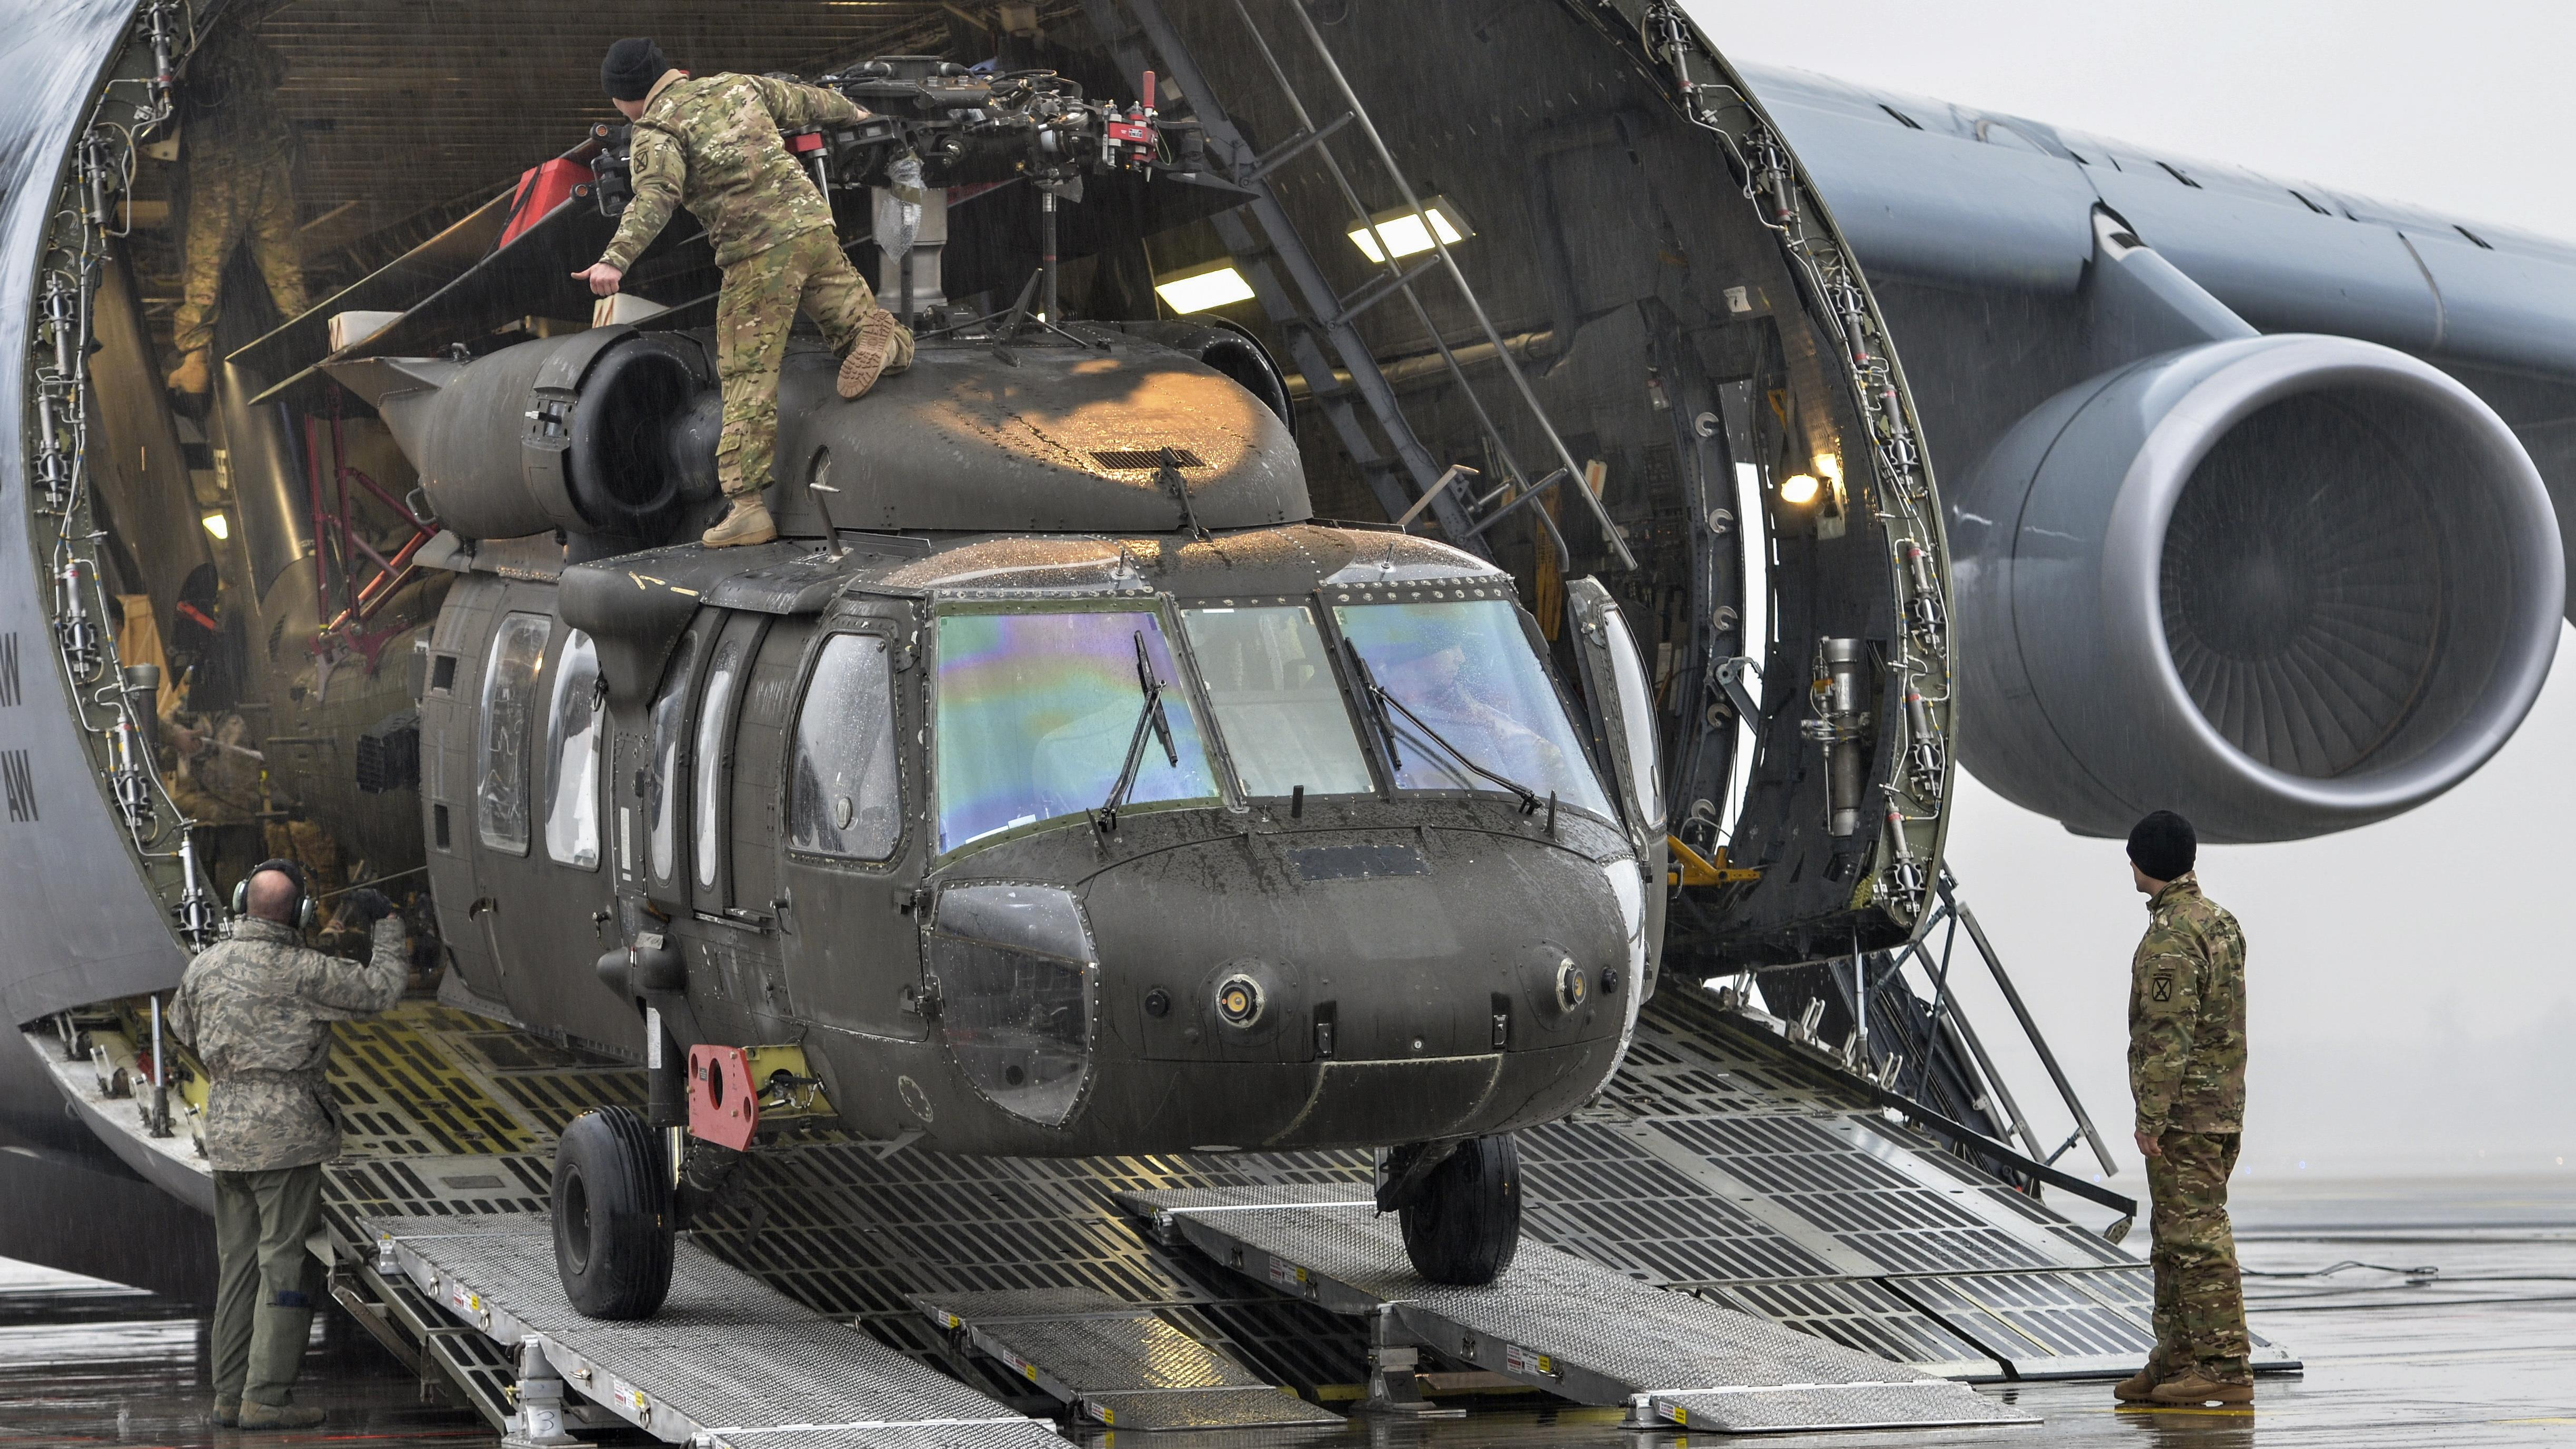 US to provide Afghanistan with up to 159 Black Hawks to help break 'stalemate'